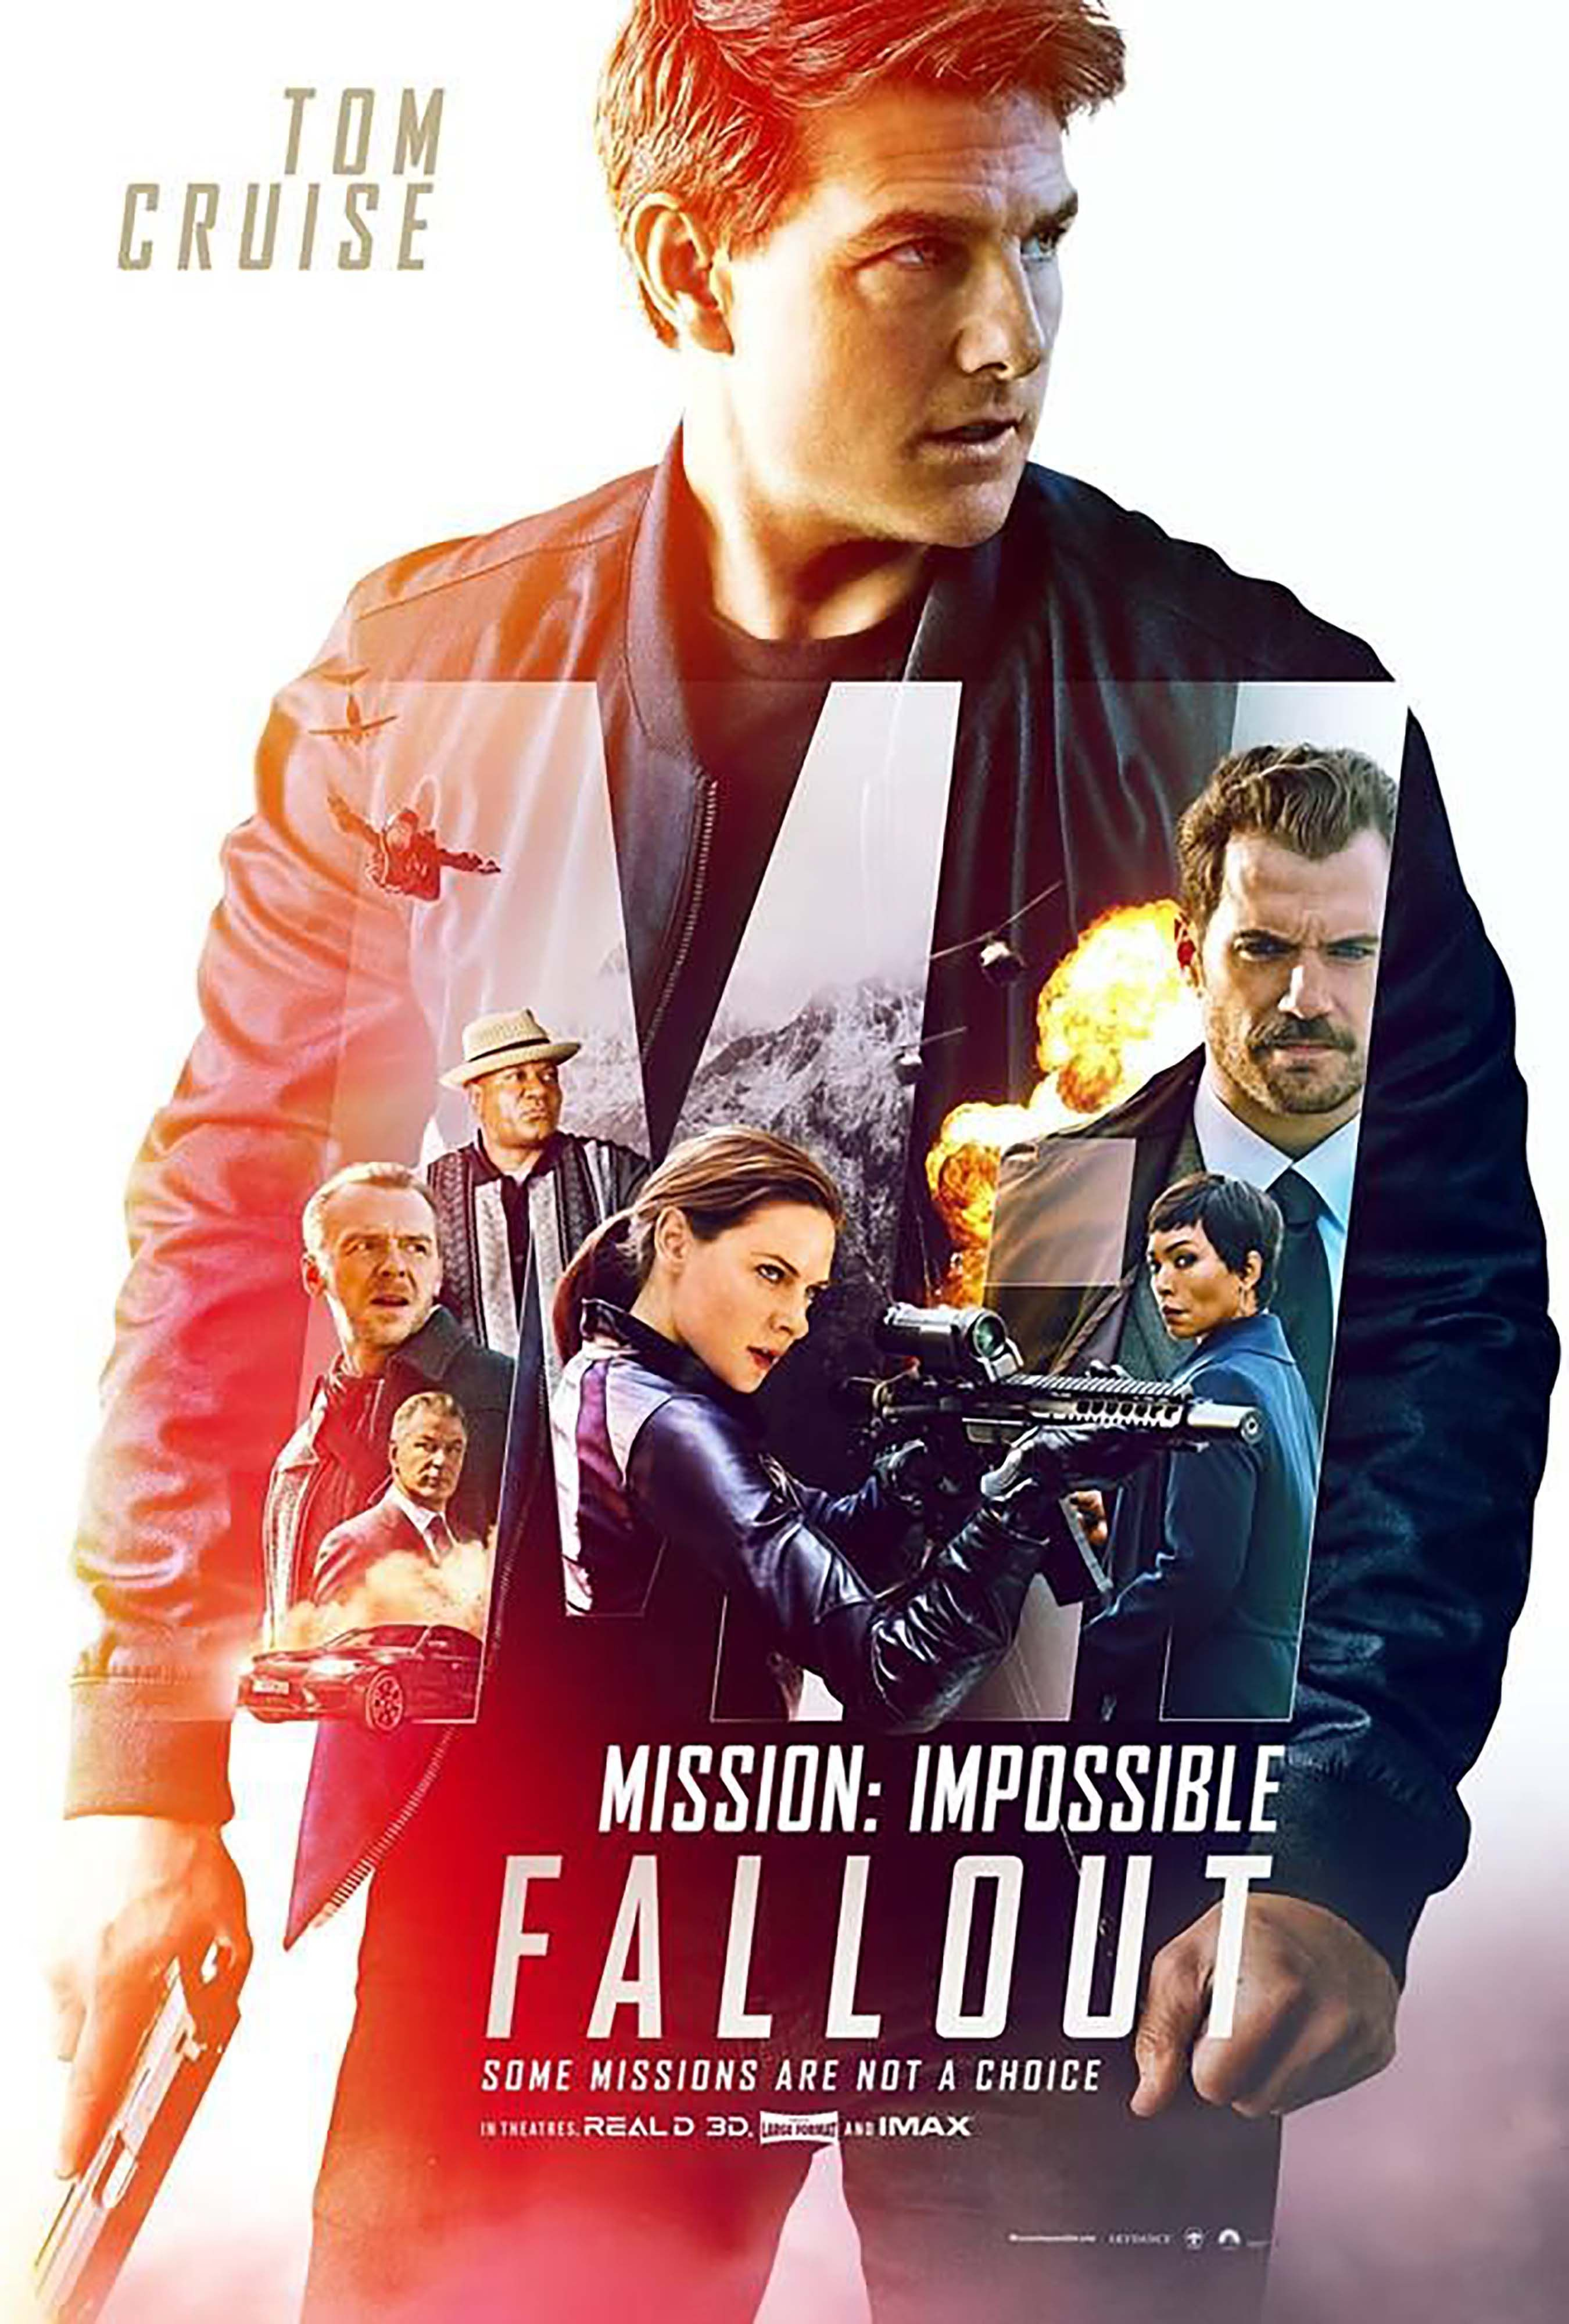 Paramount Pictures Presents Skydance Media Presents Tc Productions Bad Robot Alibaba Pictu Fallout Movie Full Movies Online Free Mission Impossible Fallout